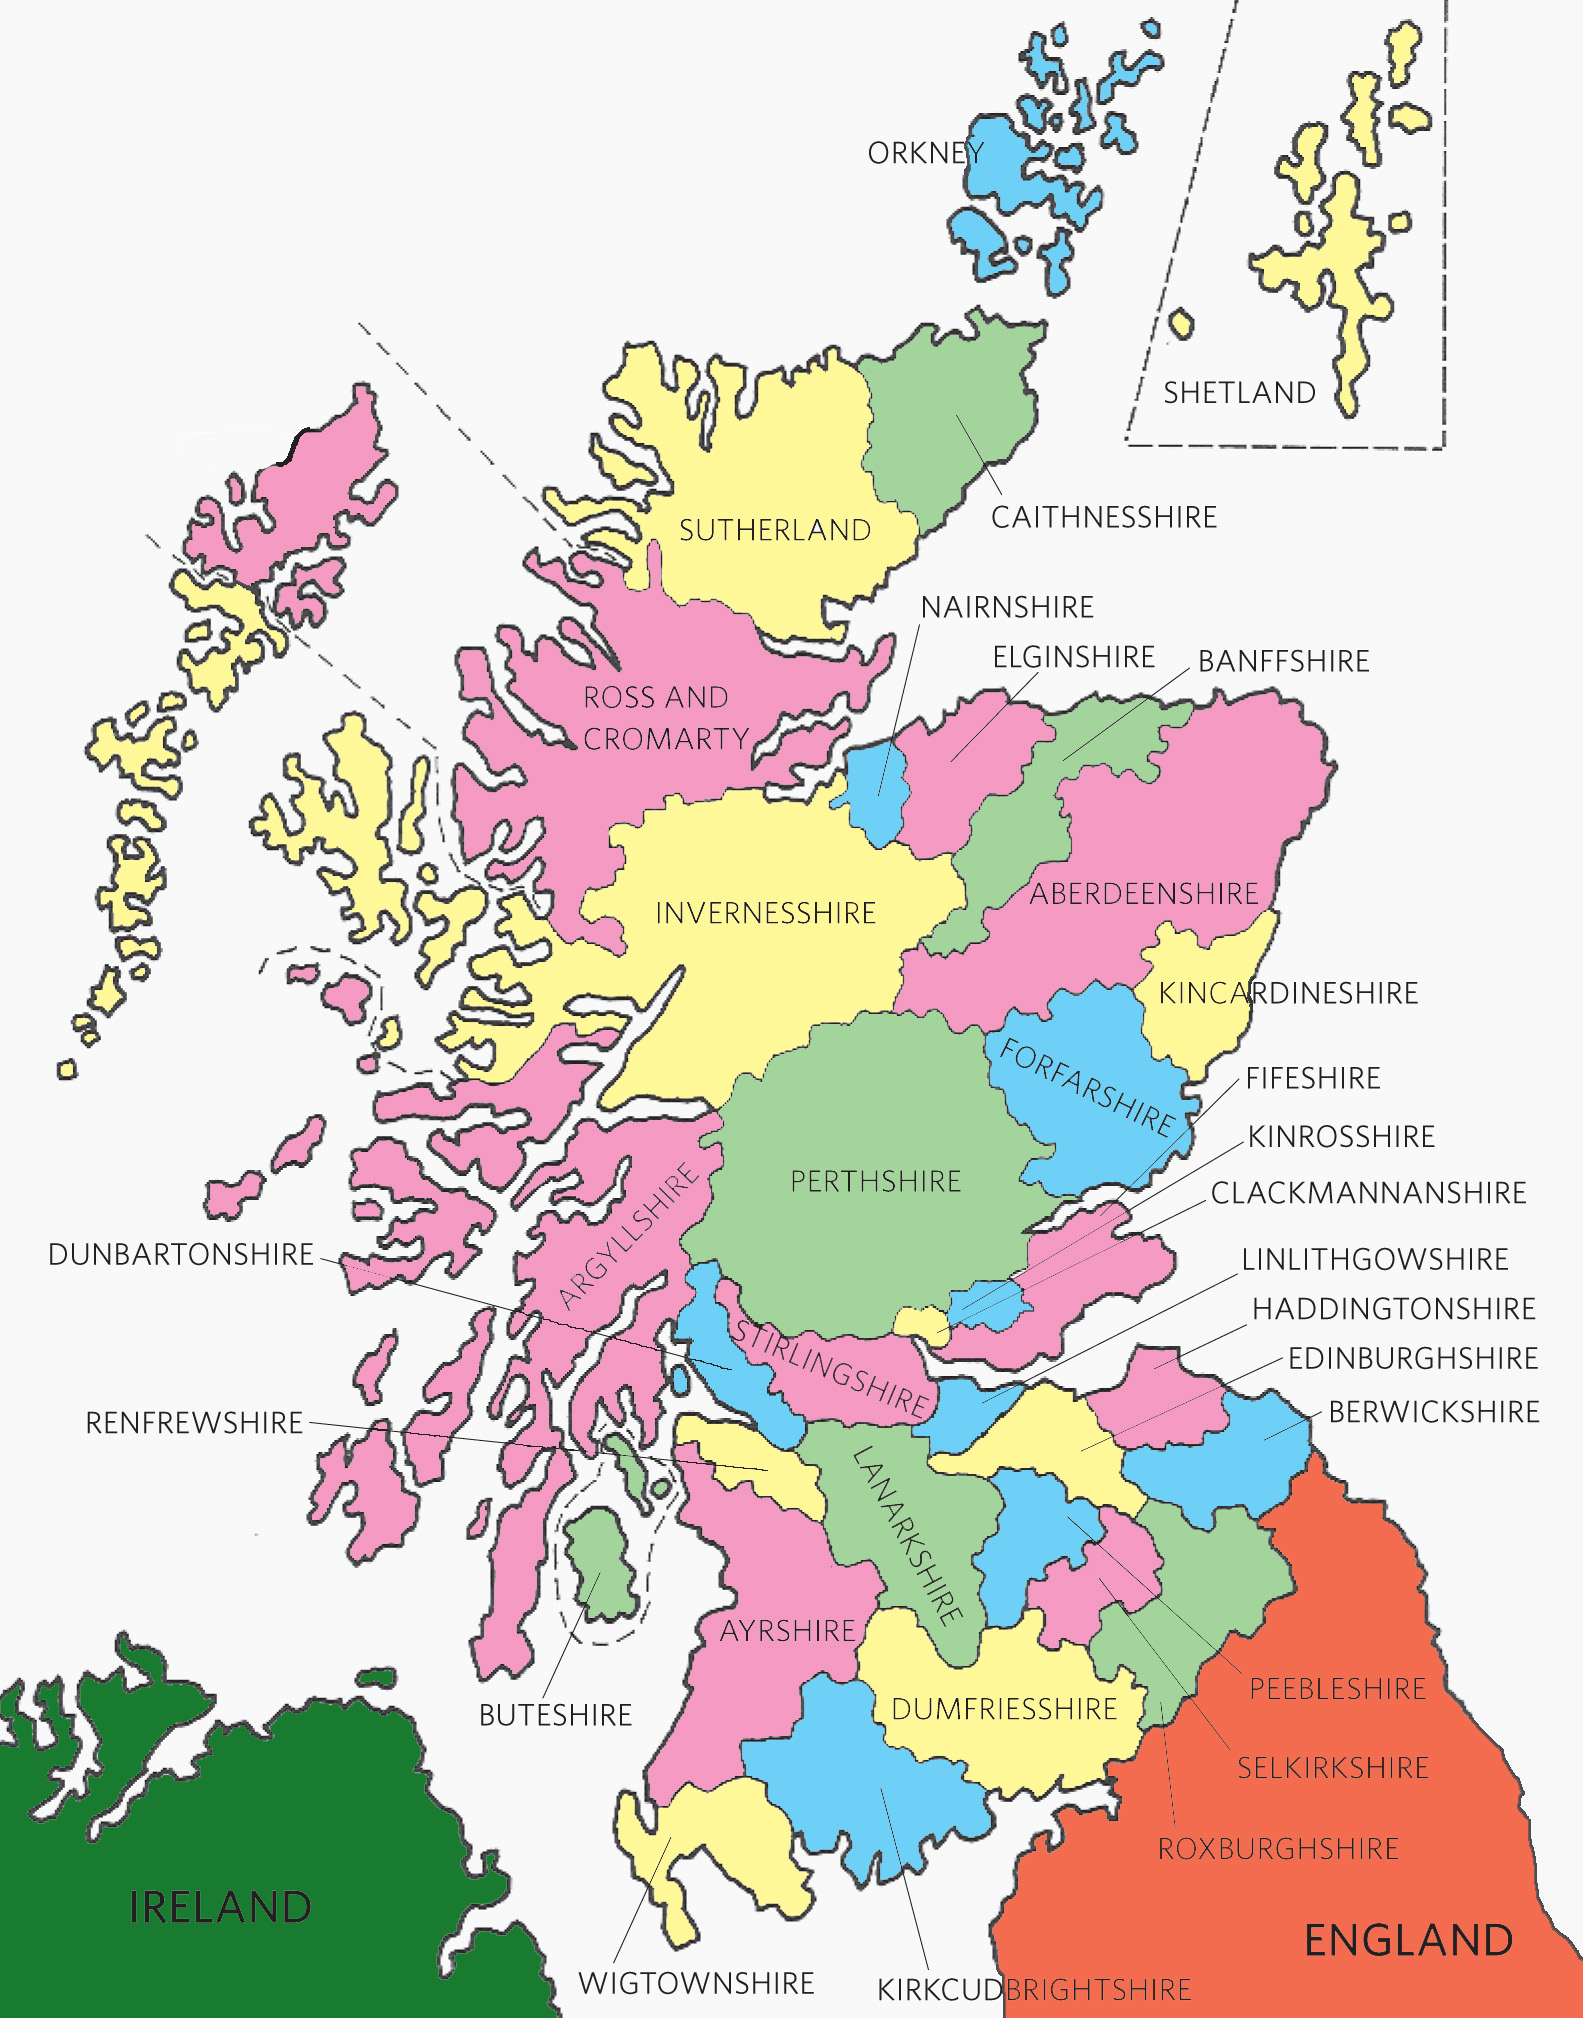 This Scottish counties map will help you find records of your Scottish ancestors.